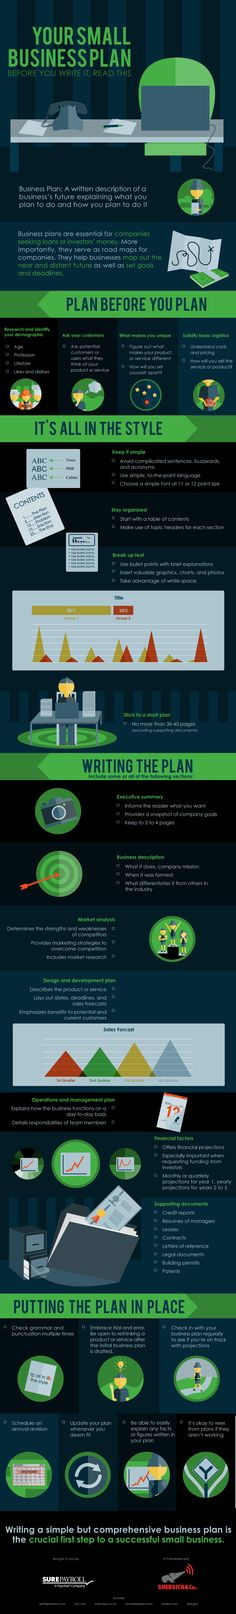 Your Small Business Plan: Before You Write It, Read This [INFOGRAPHIC] | SurePayroll – Aug. 18, 2014